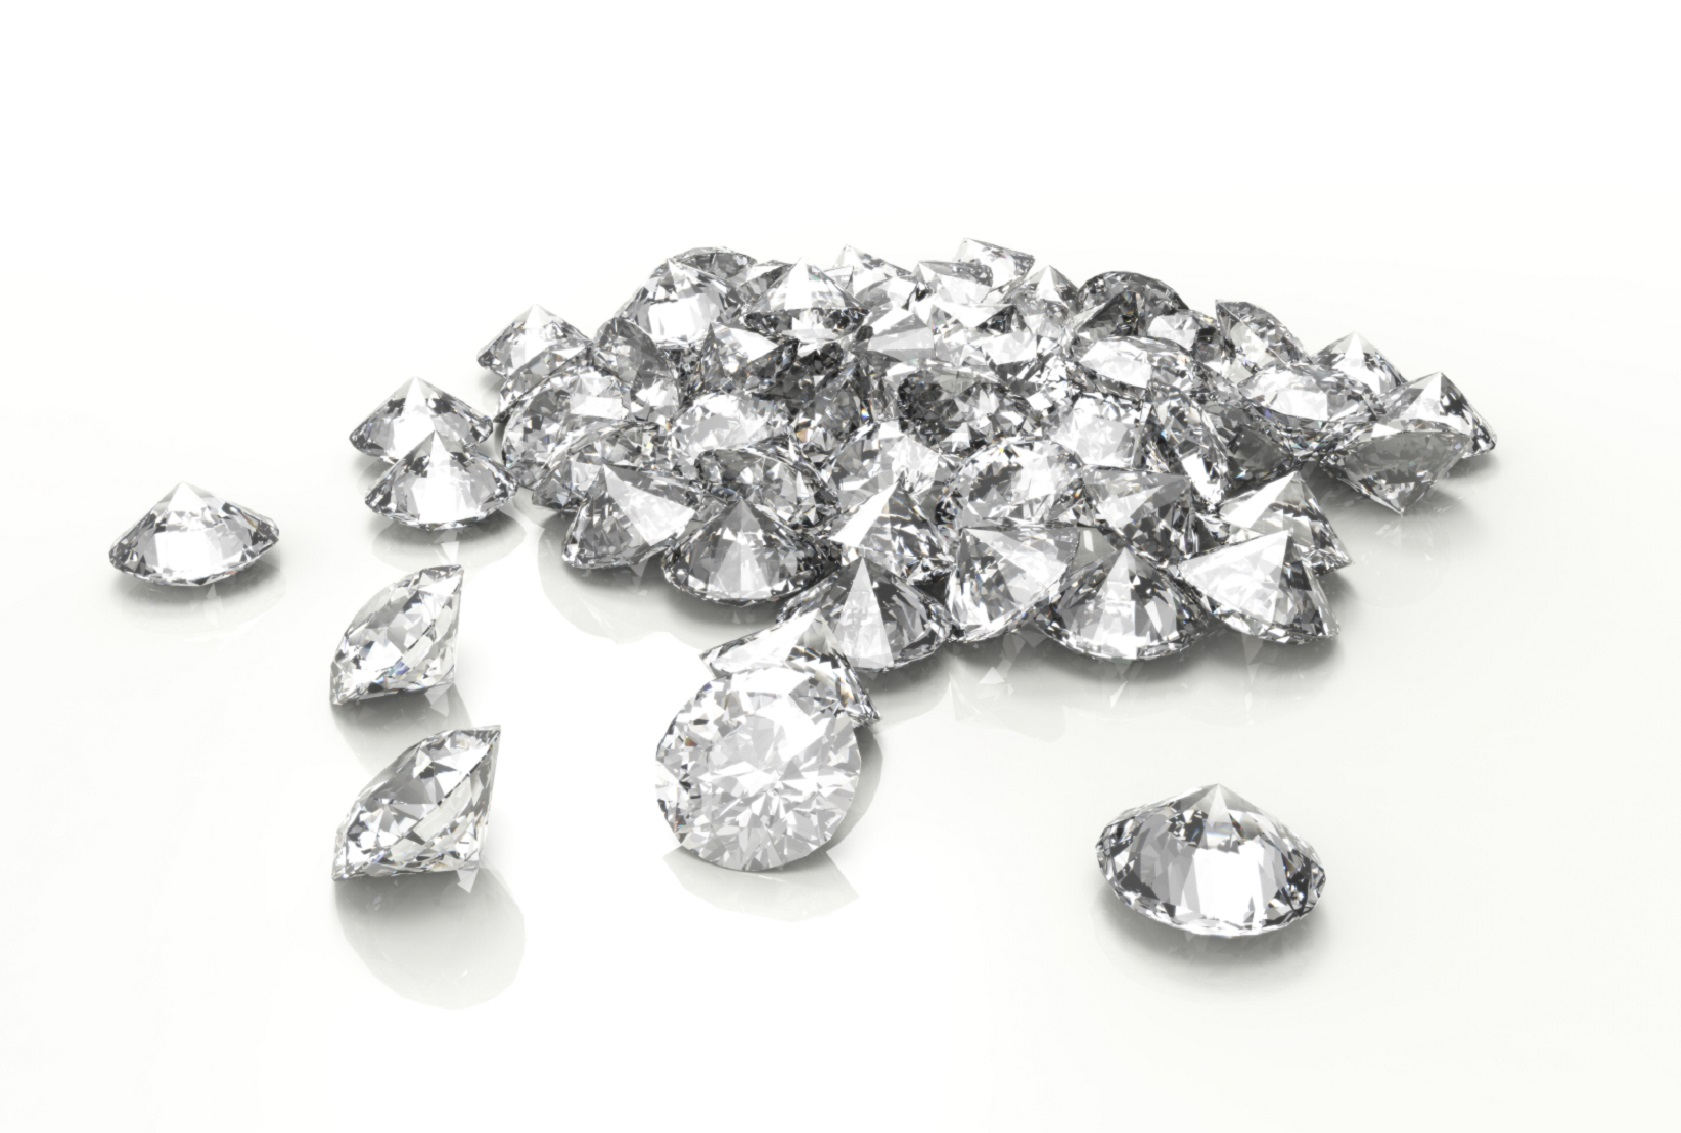 Loose Diamond Prices